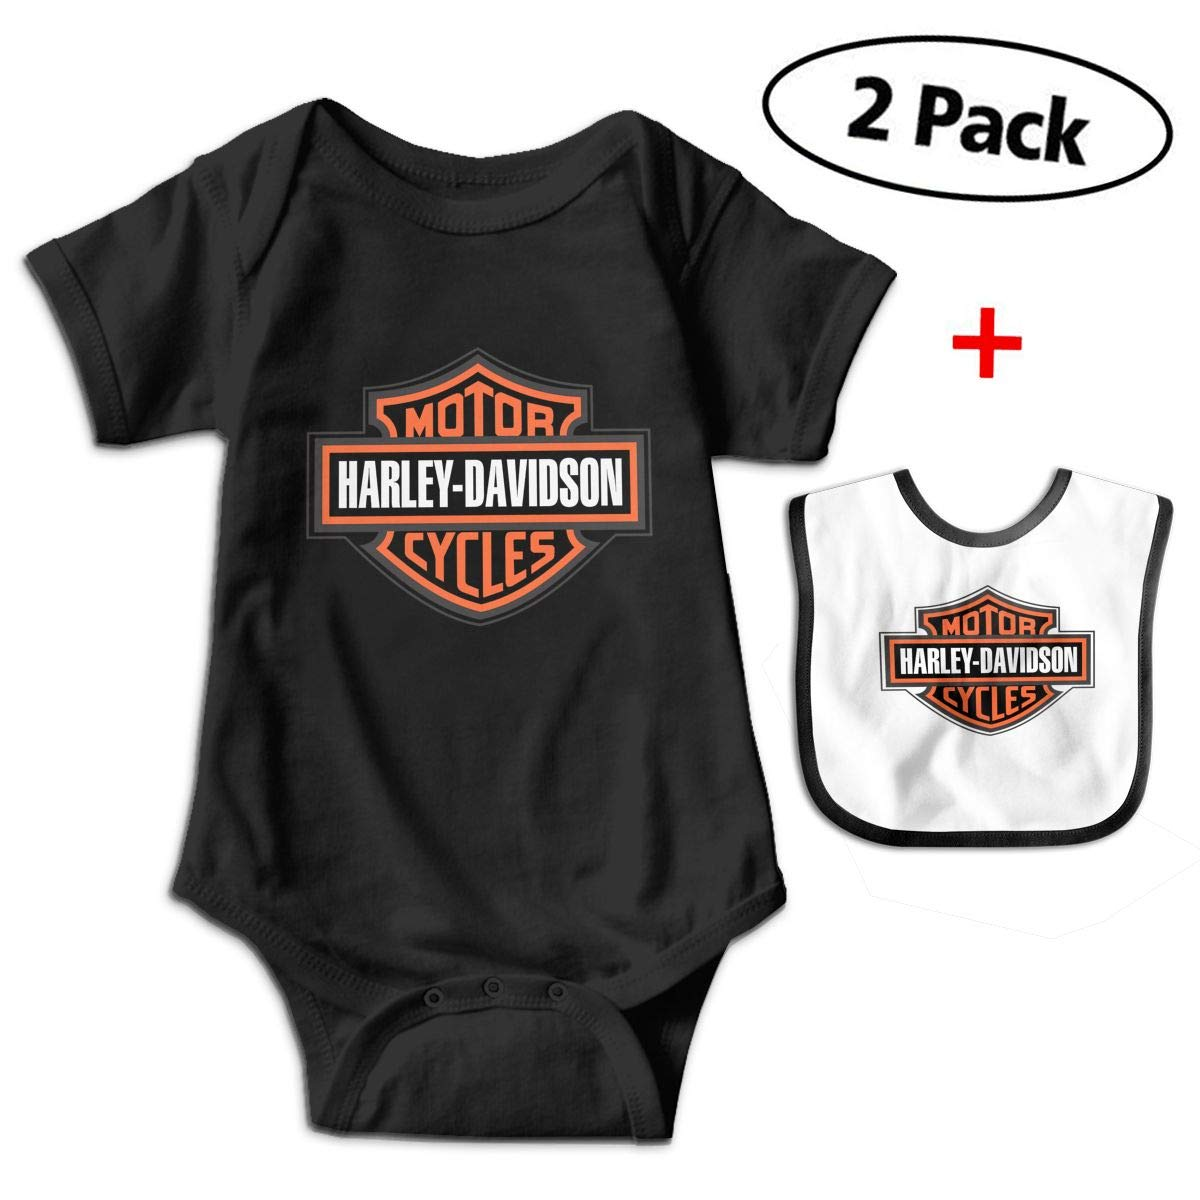 Boyâ € ™ s & Girlâ € ™ s Baby Harley Davidson Romper Bodysuit Baby Onesie For 3-24 Months (With A Toddler Bib) Little Petman